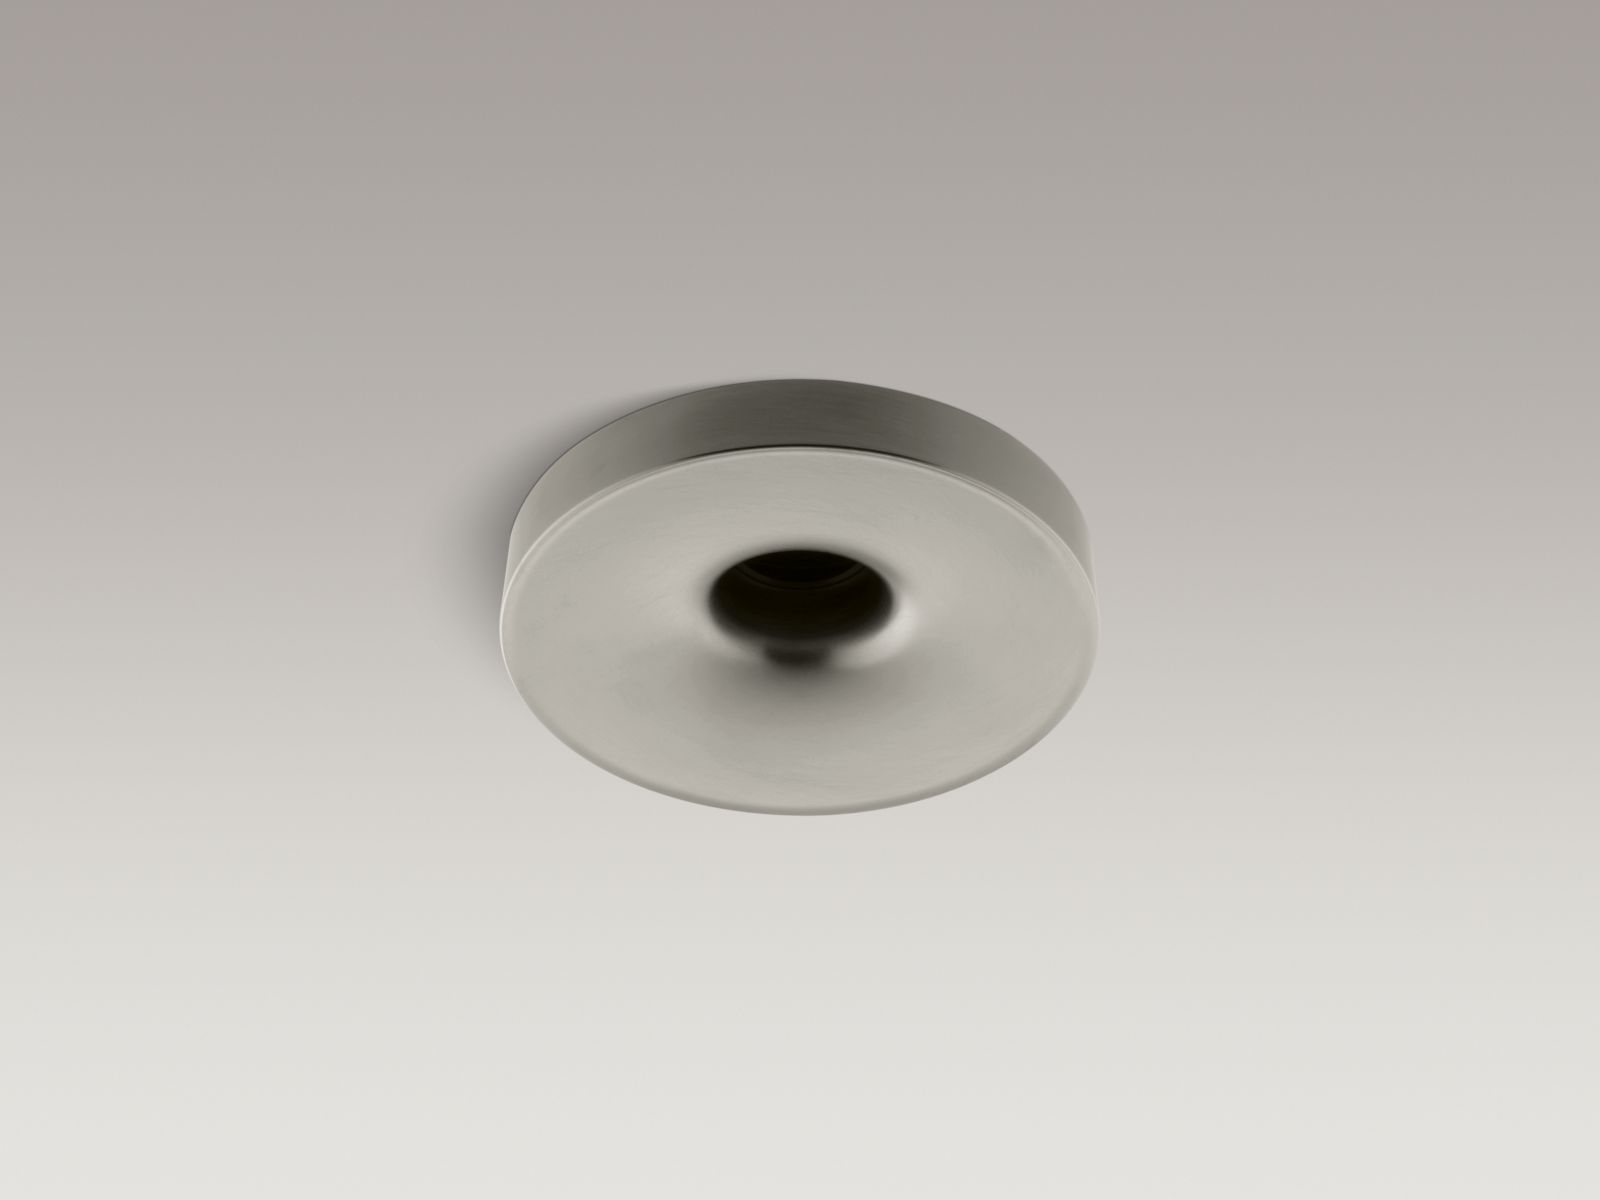 "Kohler K-923-BN Laminar Wall- or Ceiling-mounted Bathtub Filler with 0.95"" Orifice Vibrant Brushed Nickel"